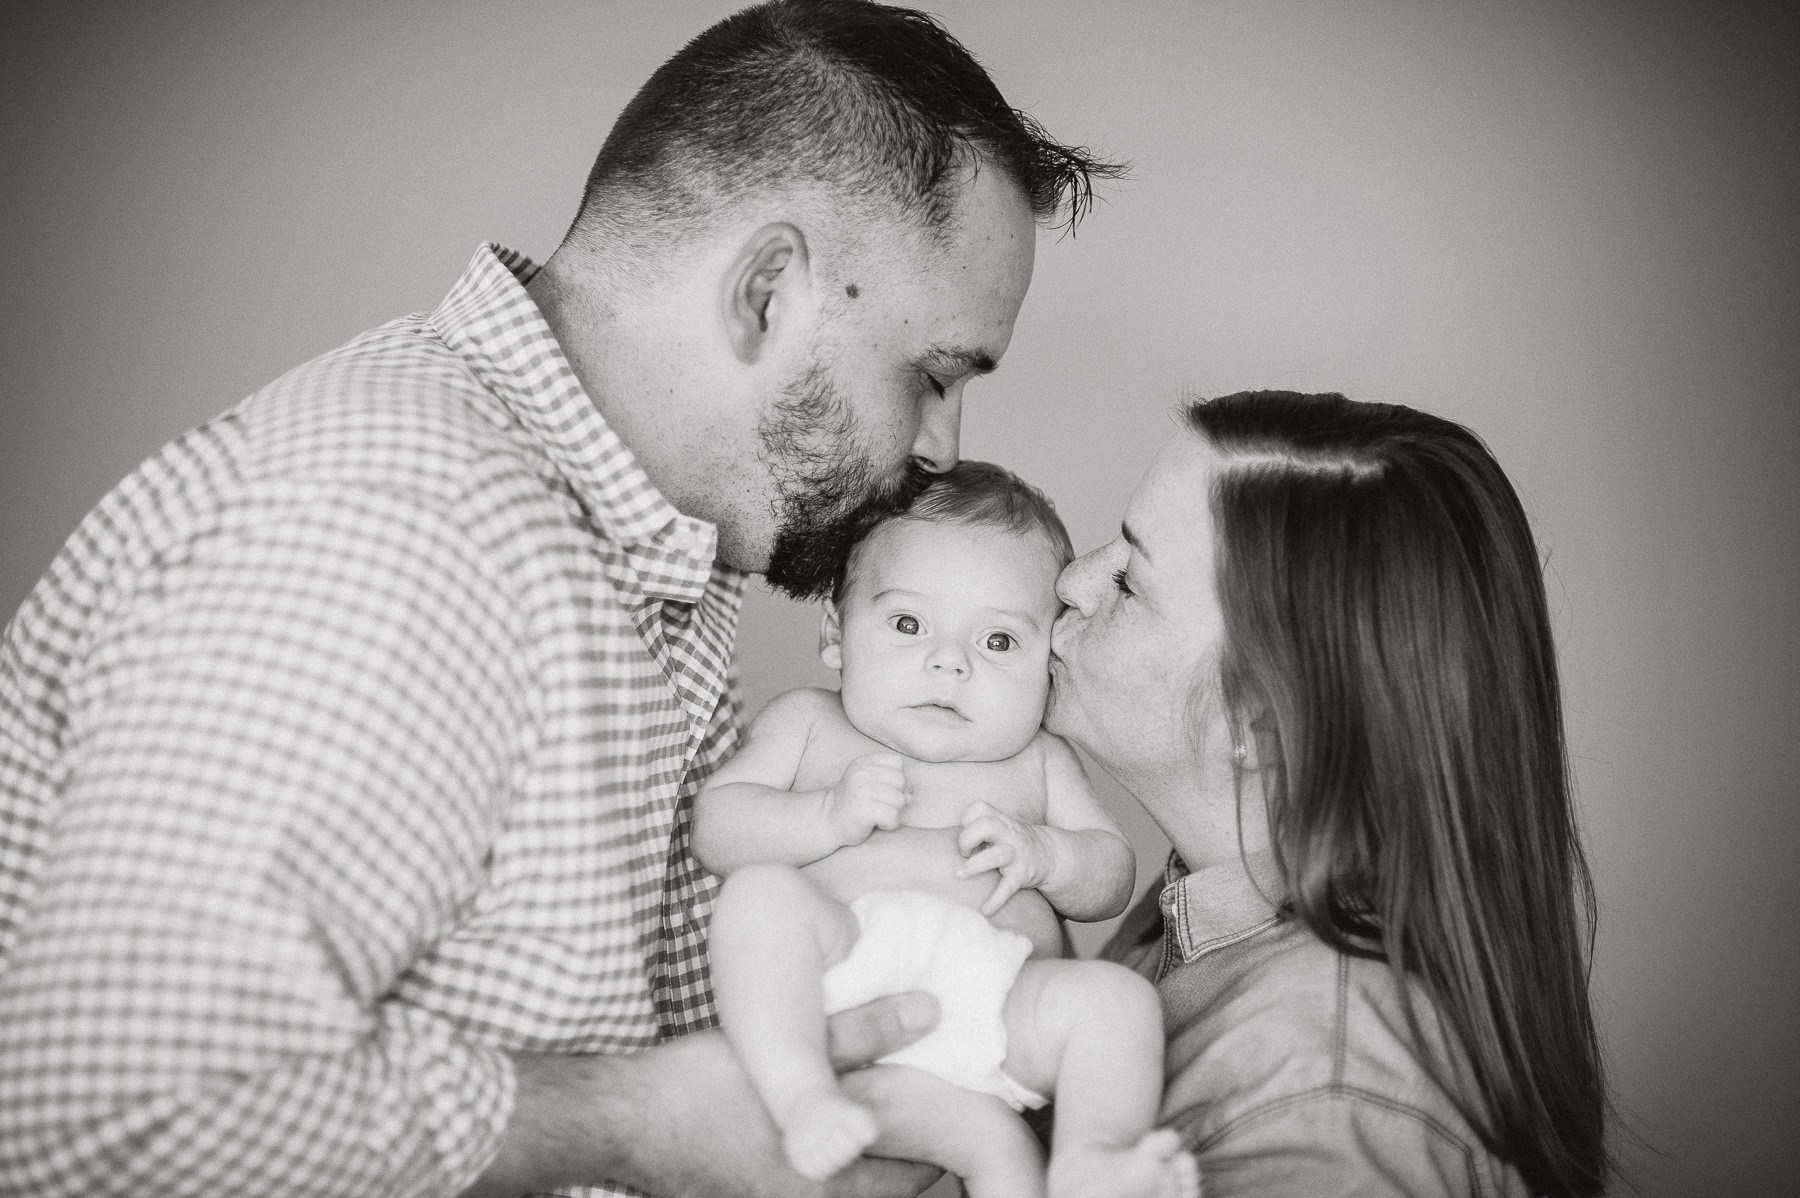 breighton-and-basette-photography-copyrighted-image-blog-croix-newborn-023.jpg